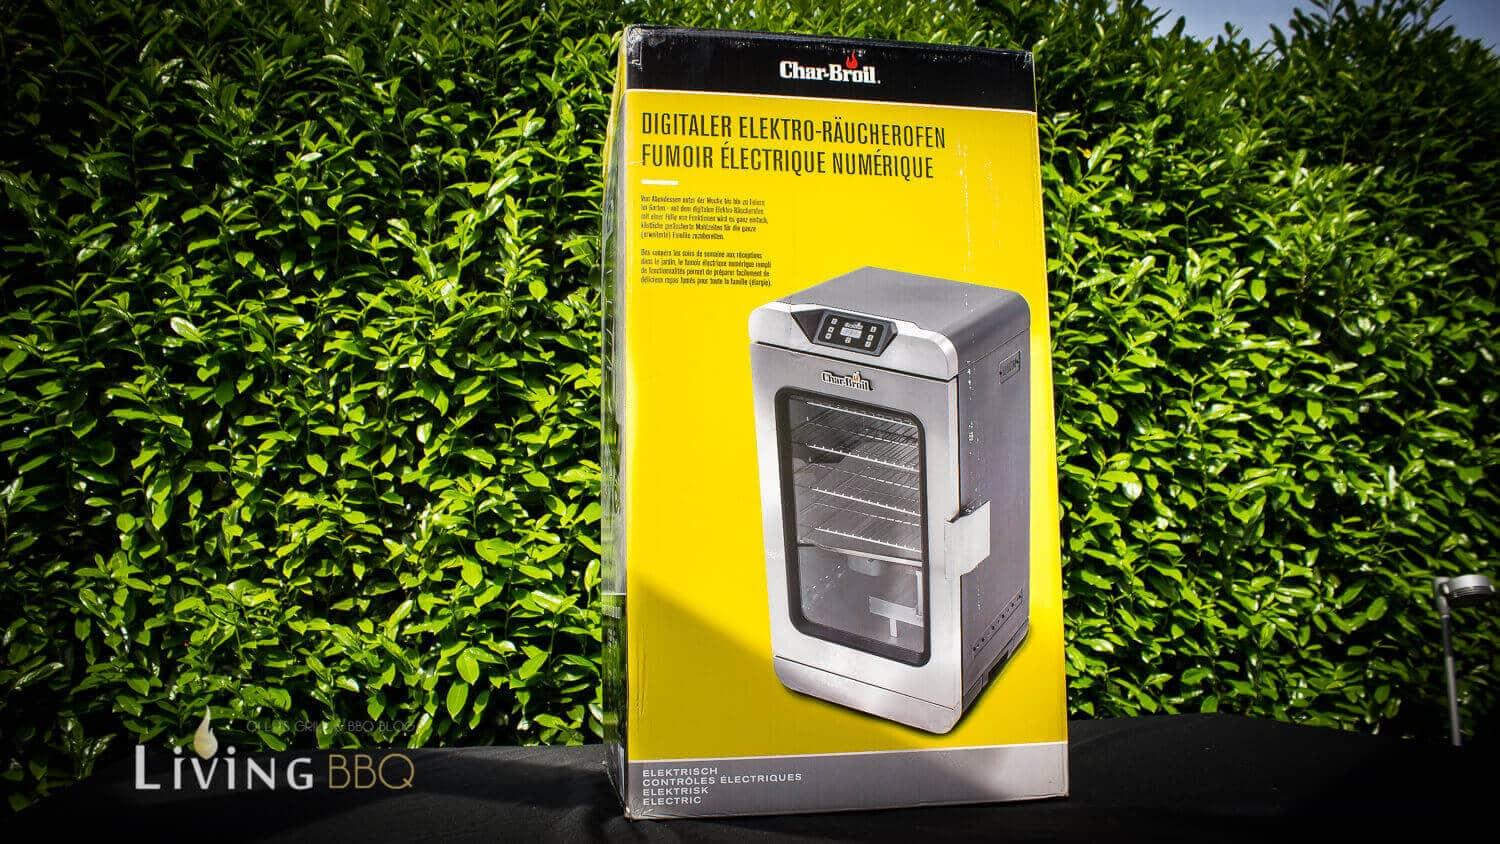 Char-Broil Digital-Smoker char-broil digital-smoker_Char Broil Digital Smoker 1 von 15